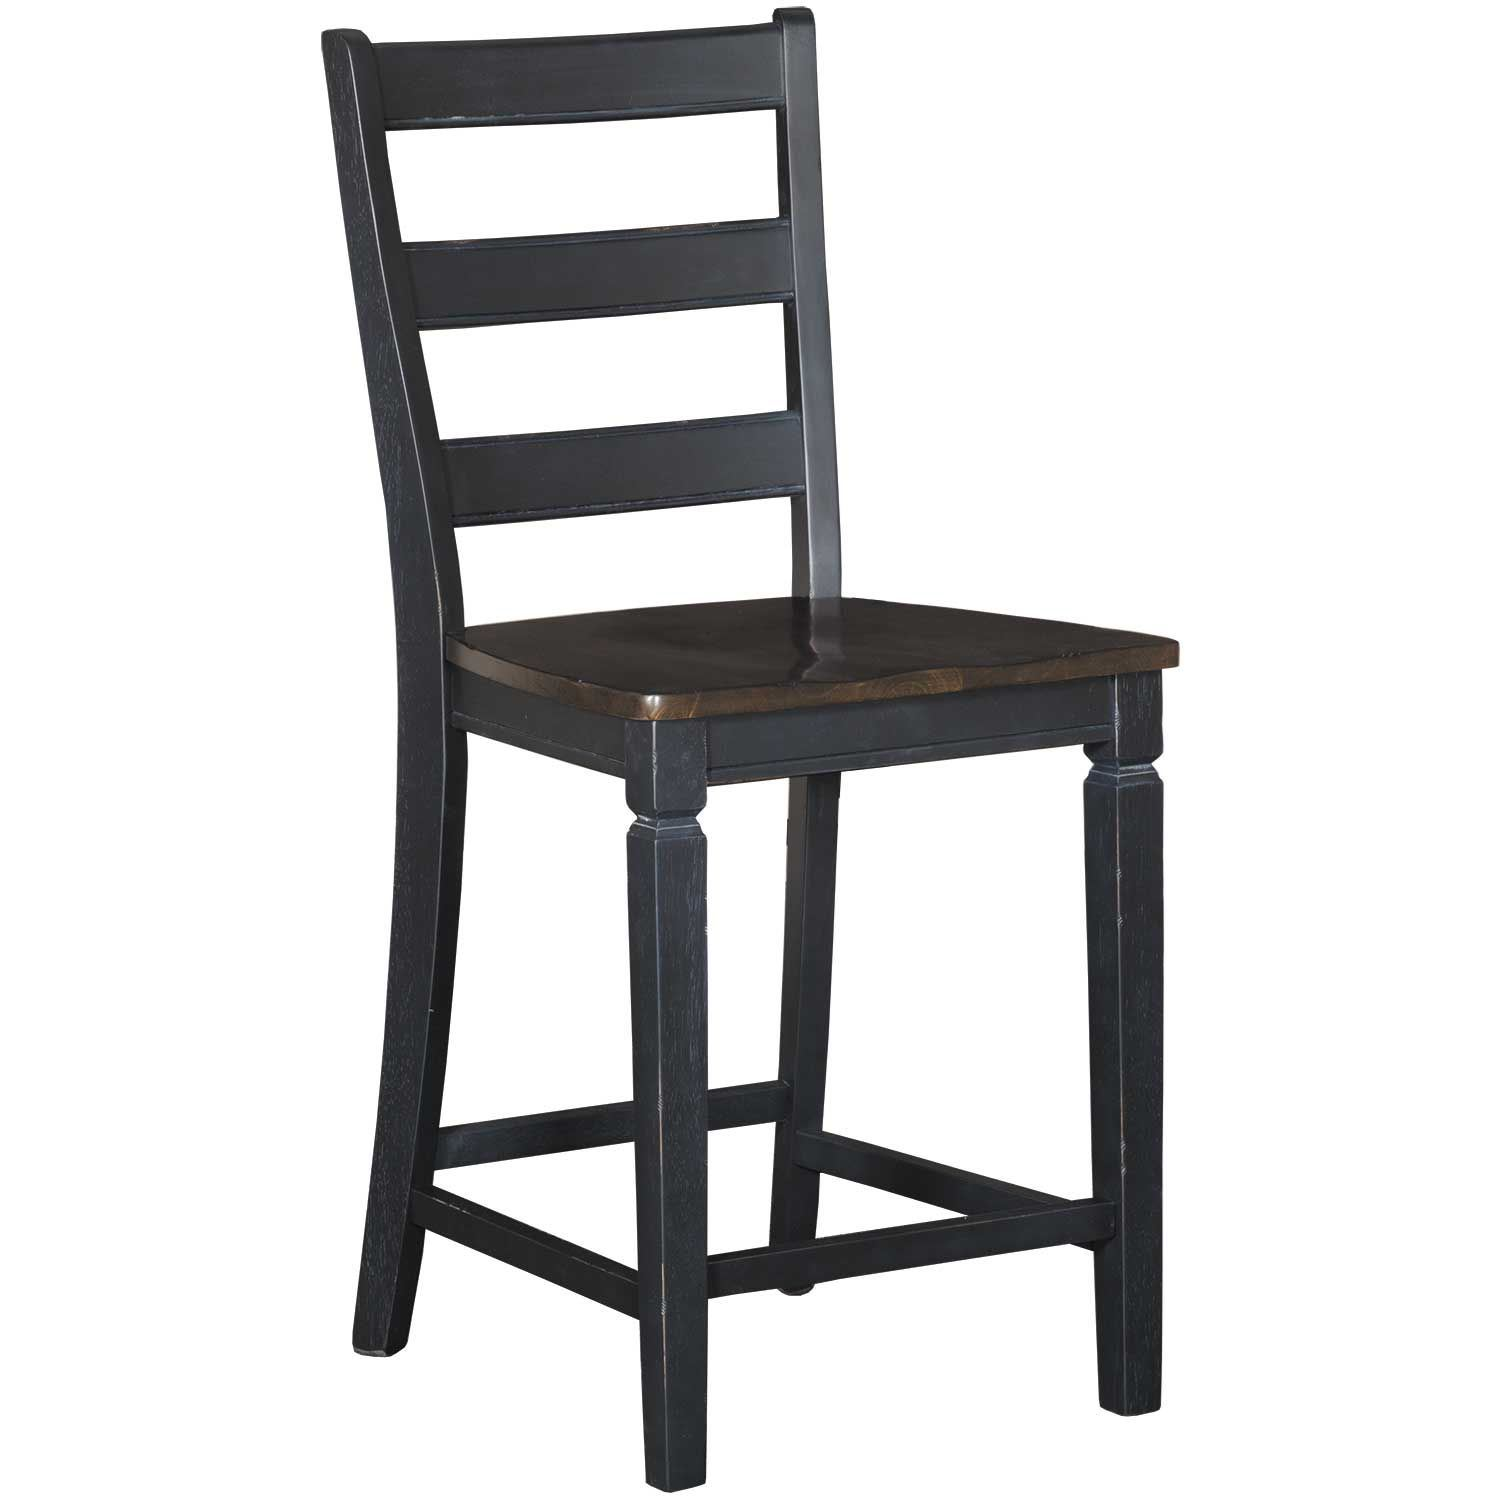 "Picture of Glennwood Two-Tone 24"" Barstool in Black/Charcoal"